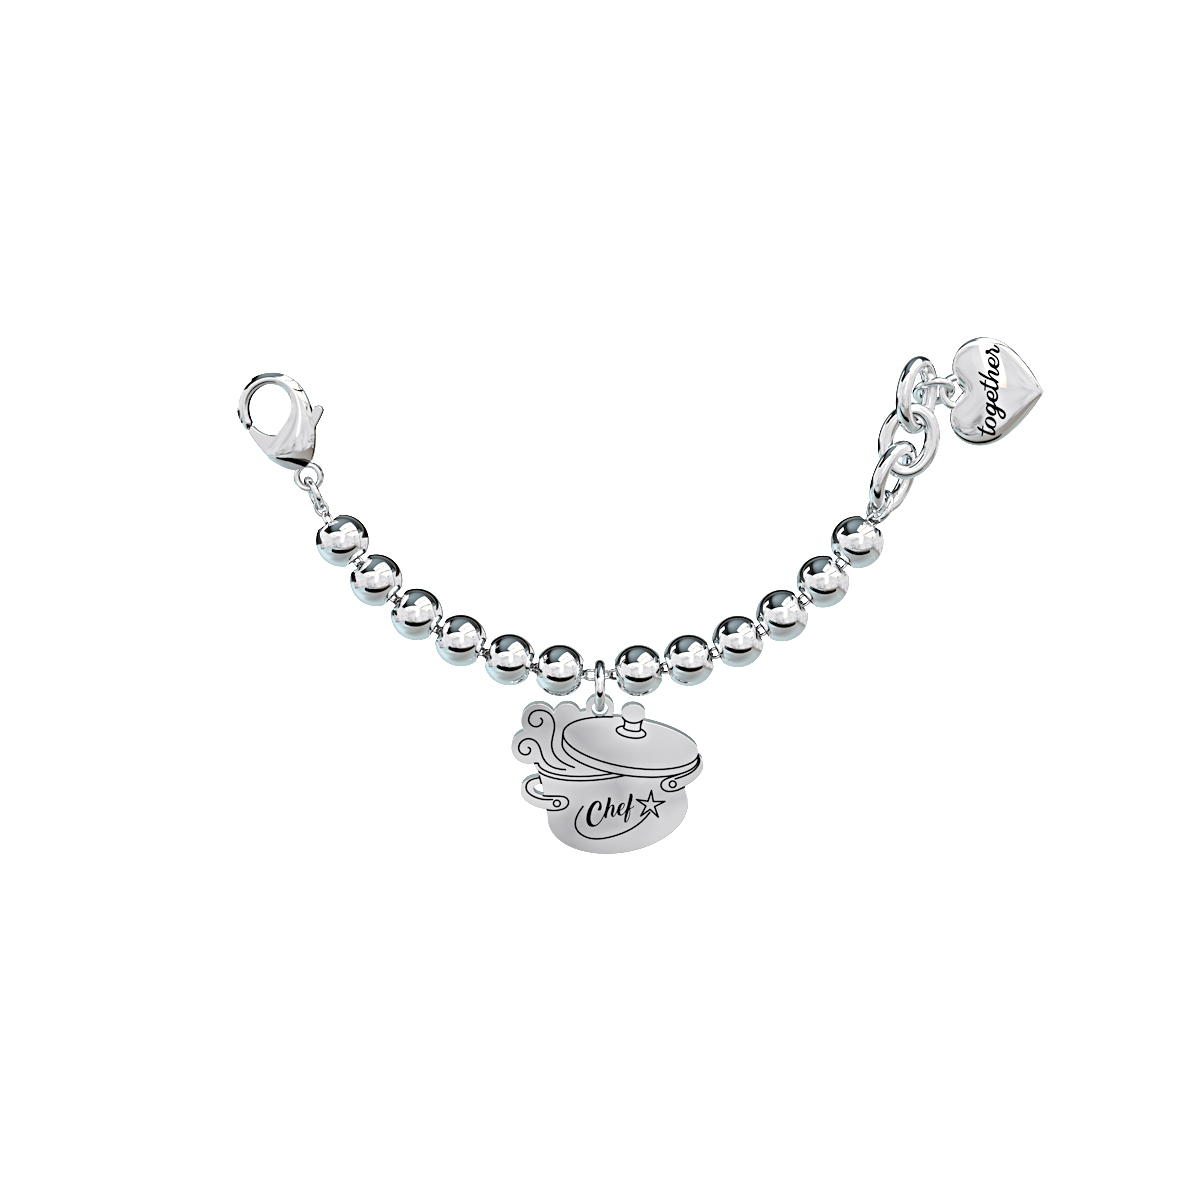 Elemento Single Bracciale 2jewels donna Together componibile Chef 131079